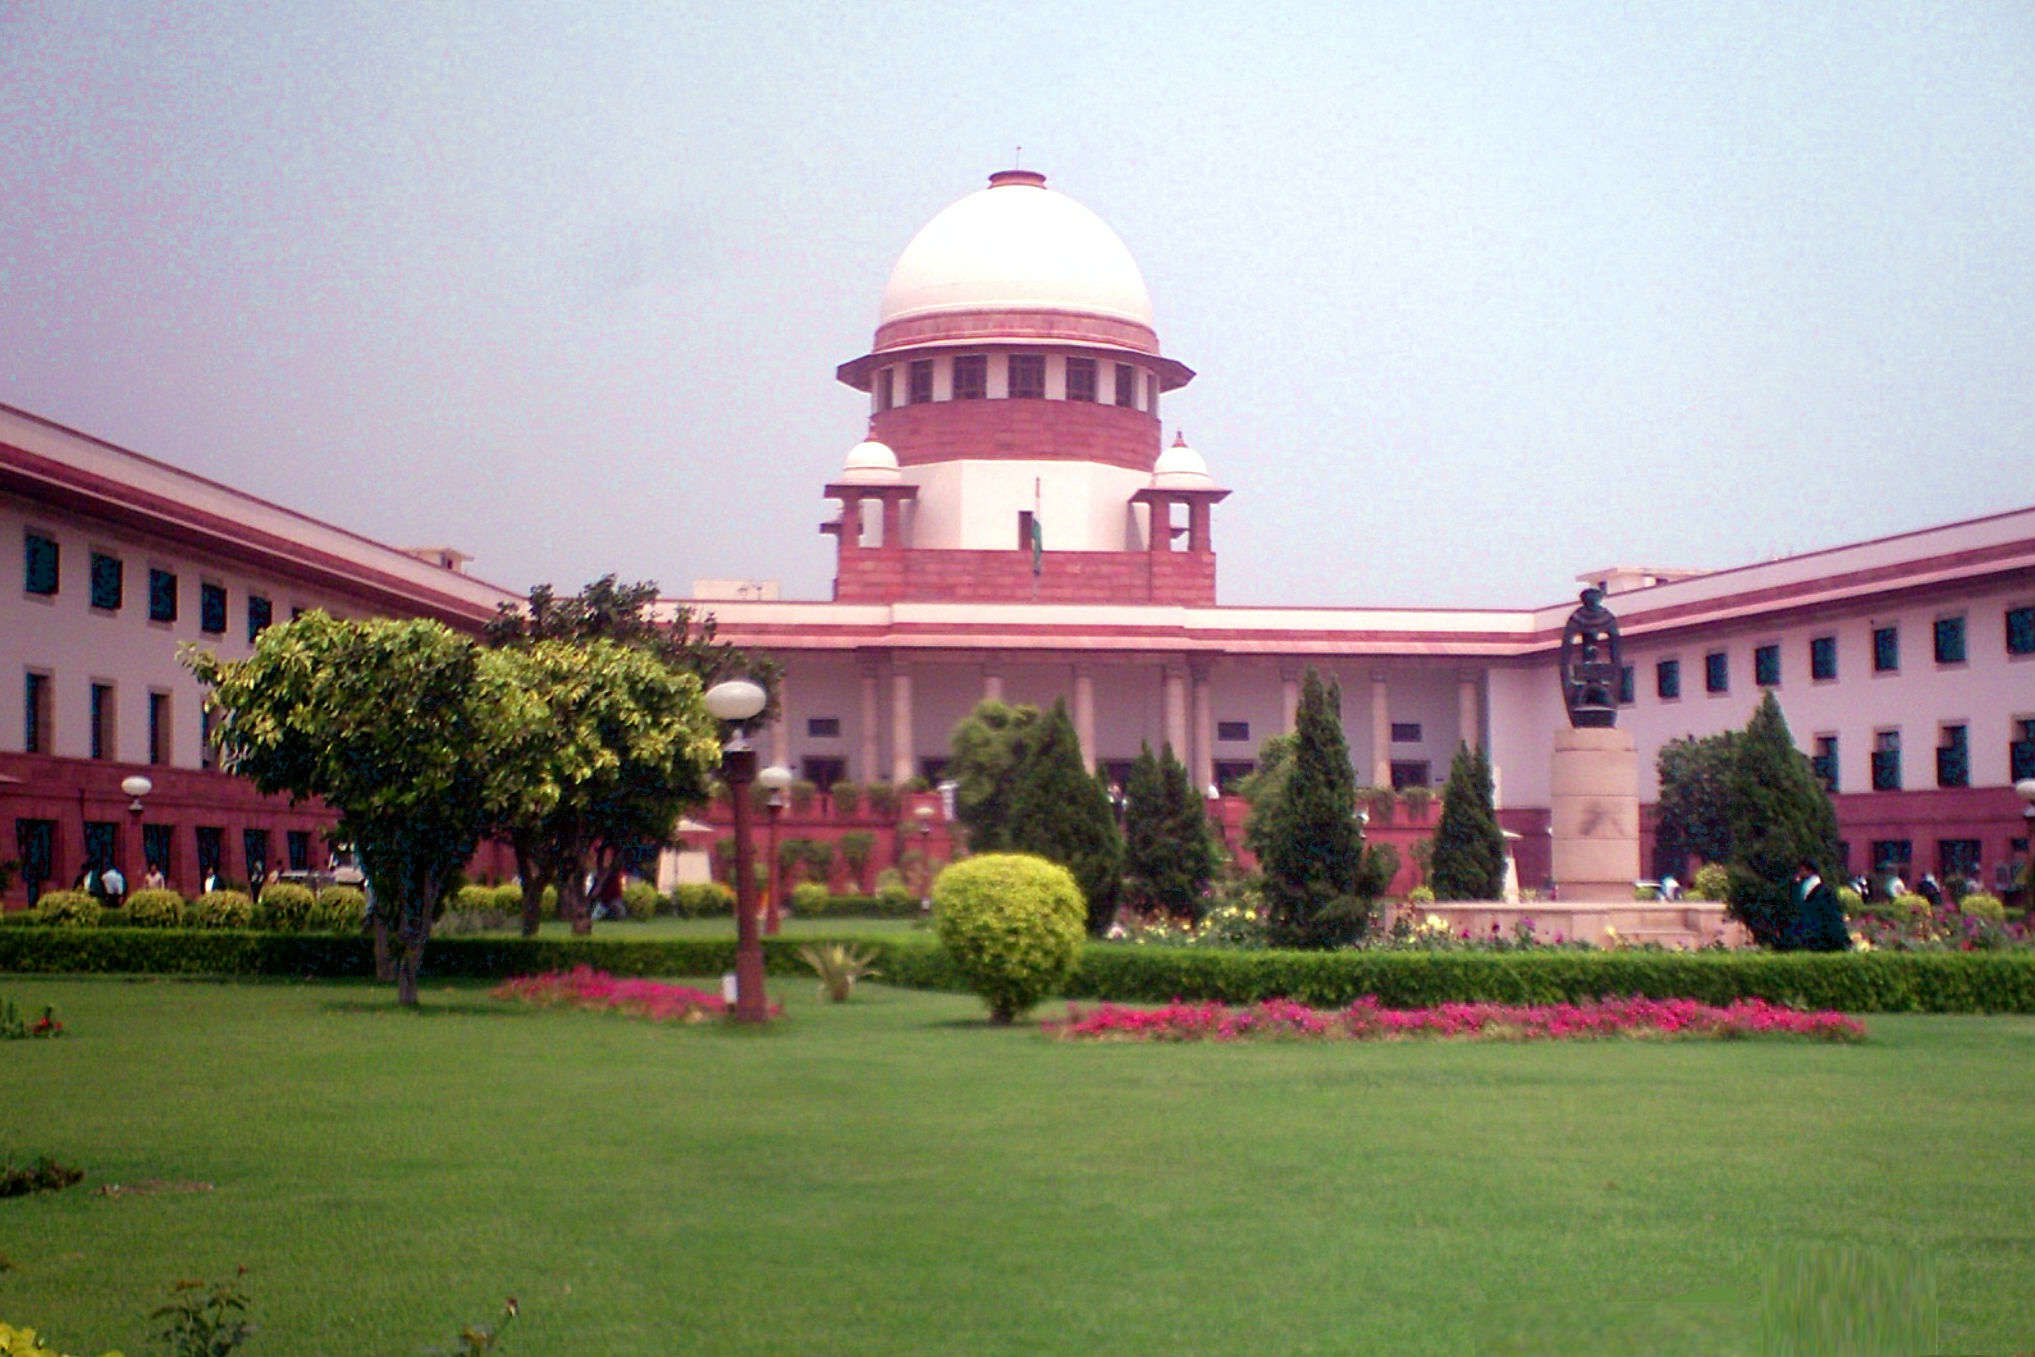 Now you can visit the Supreme Court of India and take a tour